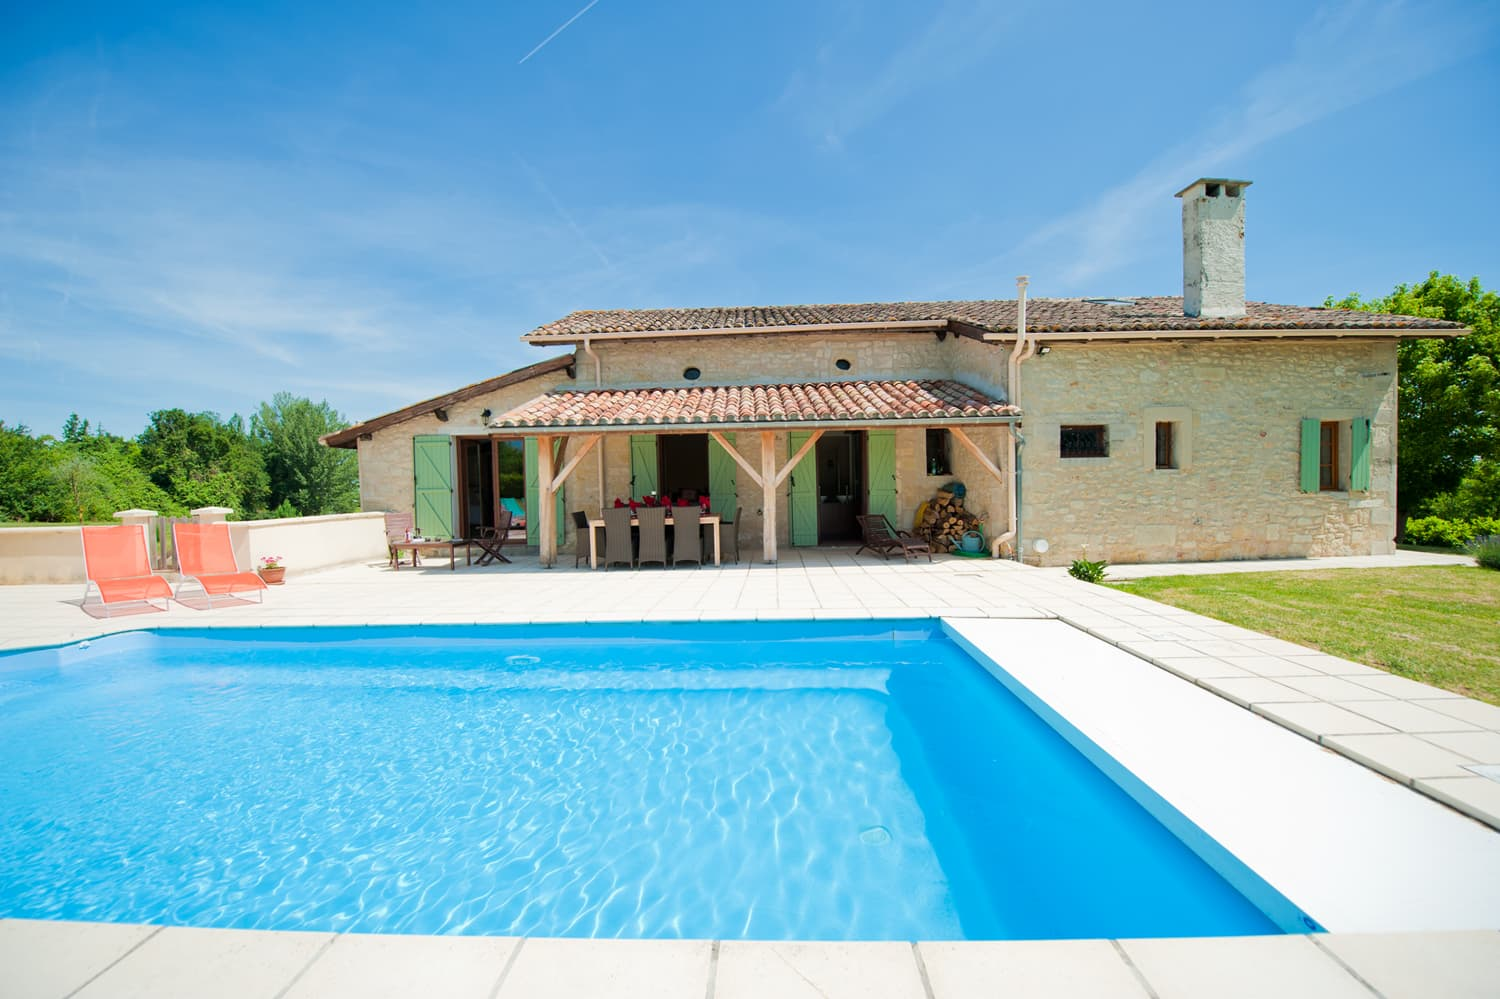 Rental home in Dordogne with private, heated pool